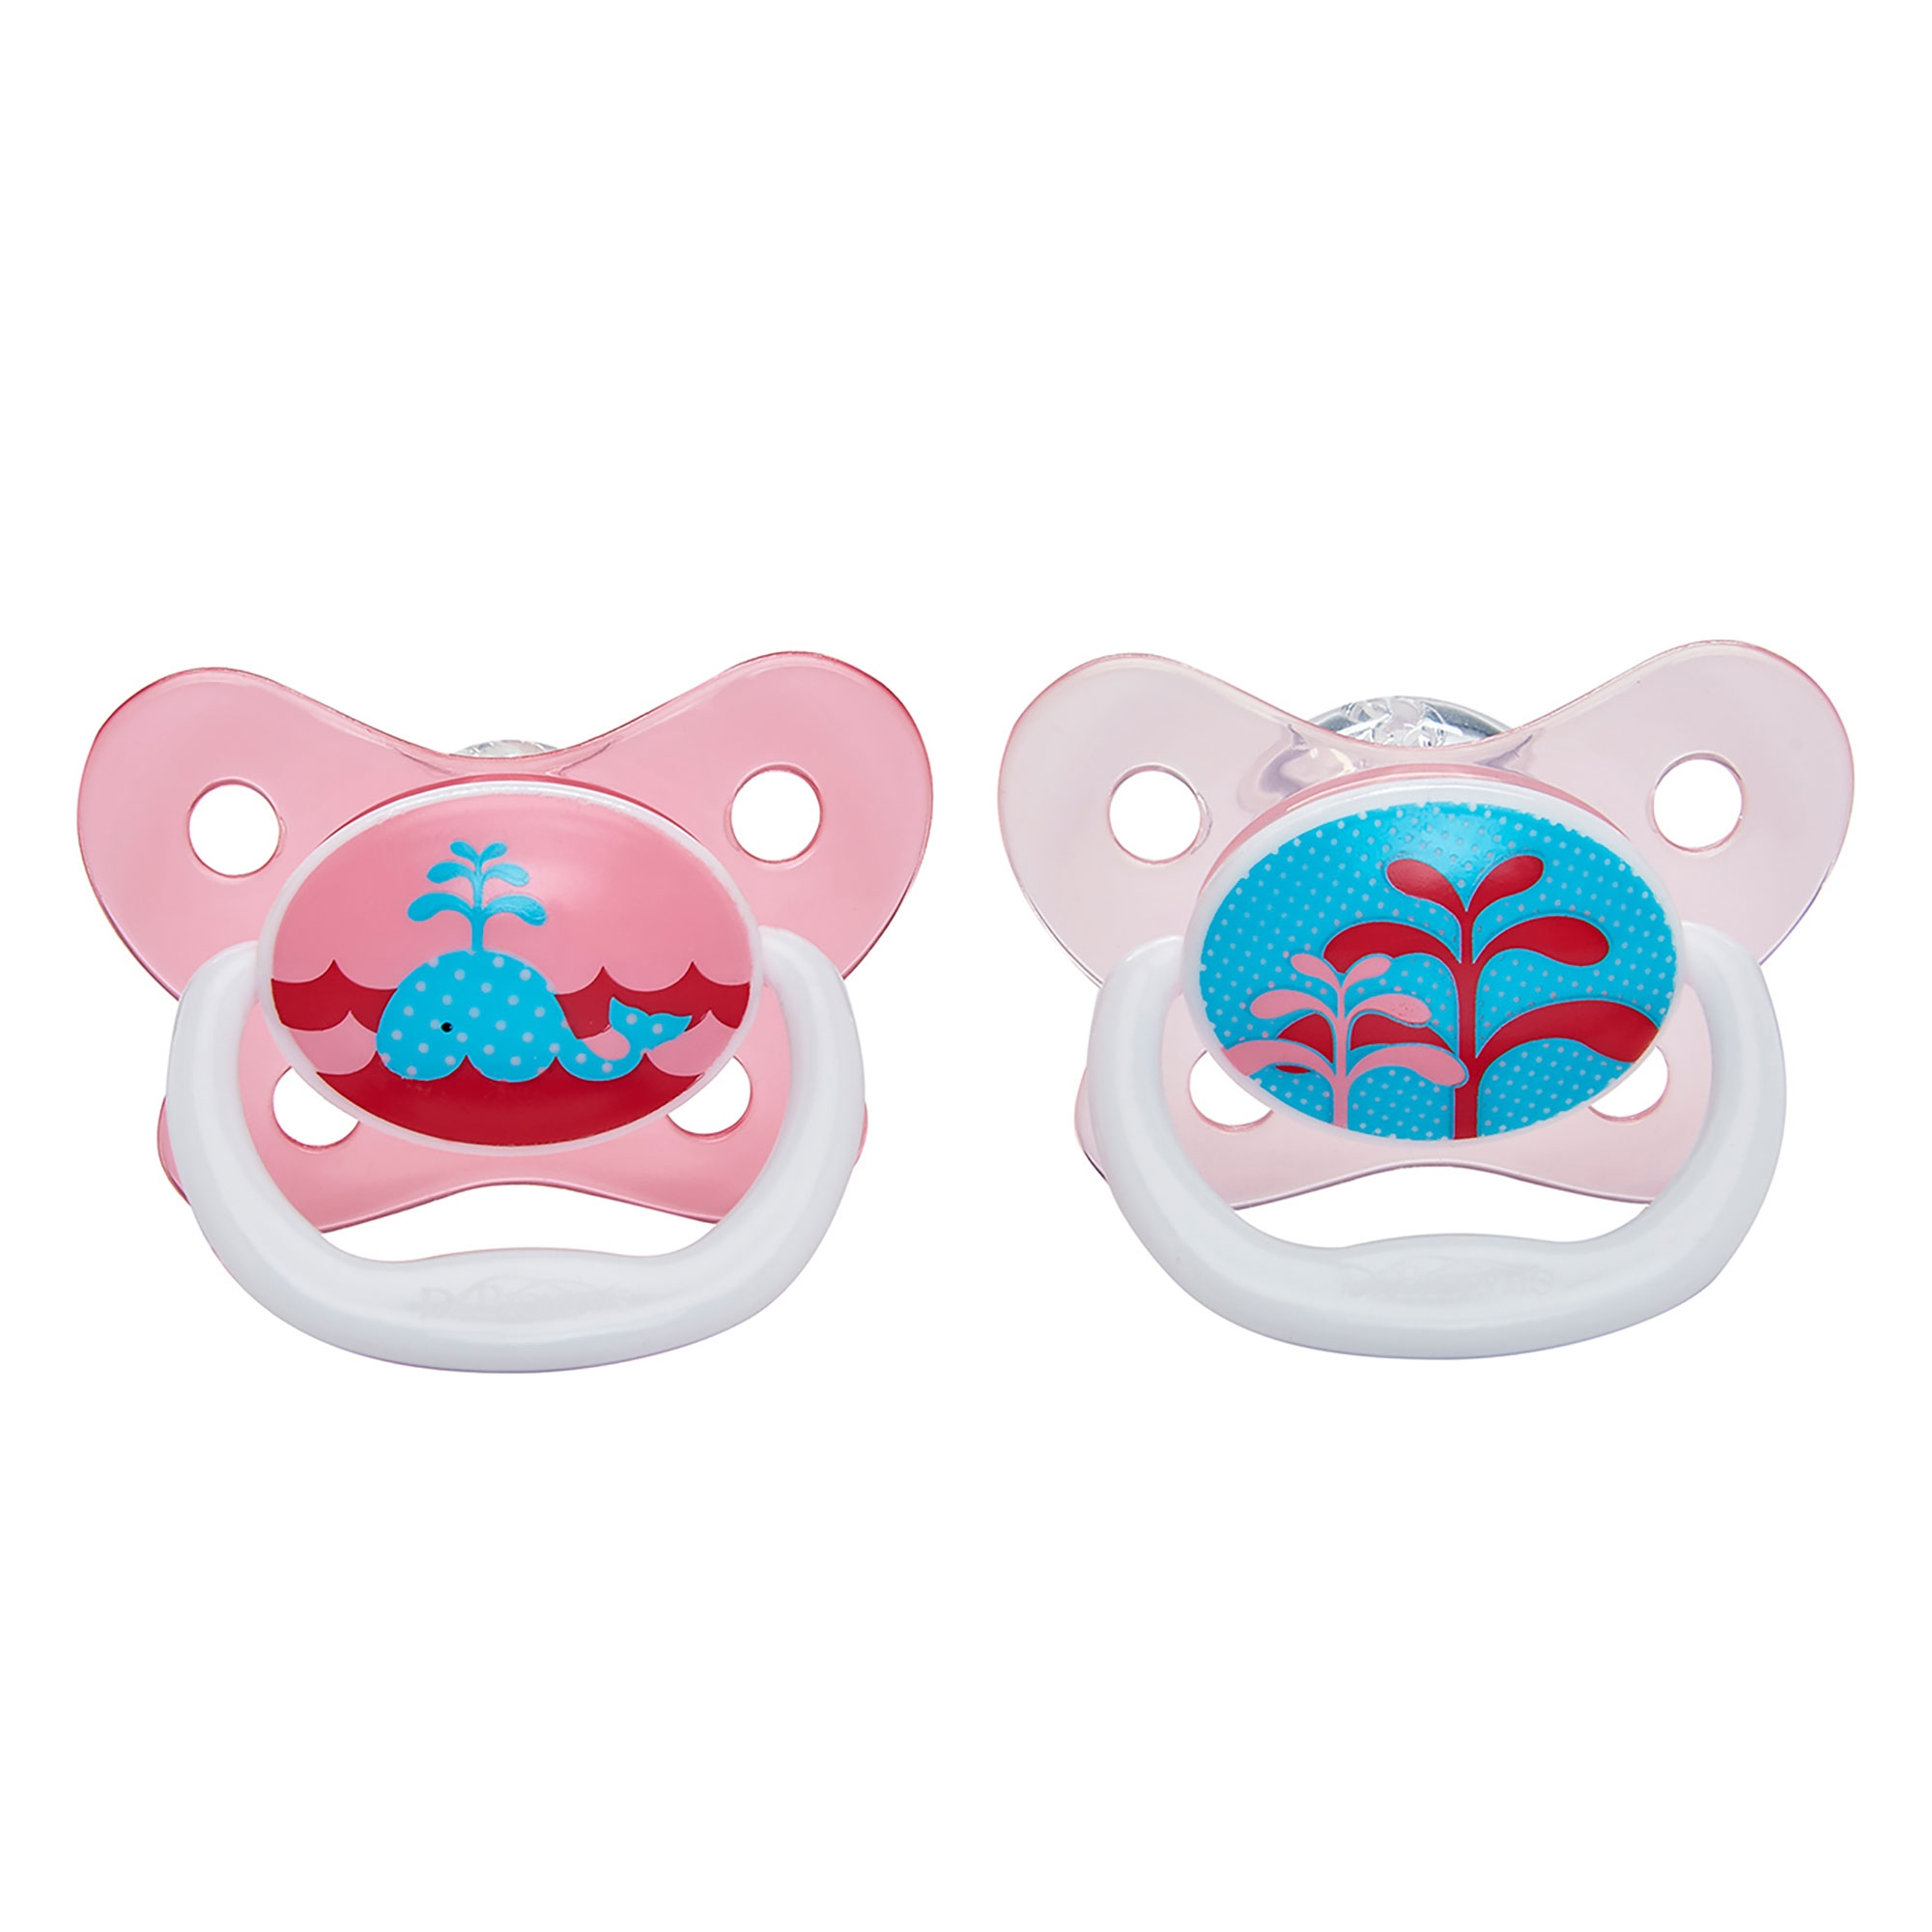 Twin Pack Dr Brown/'s PreVent Butterfly Soother//Dummy